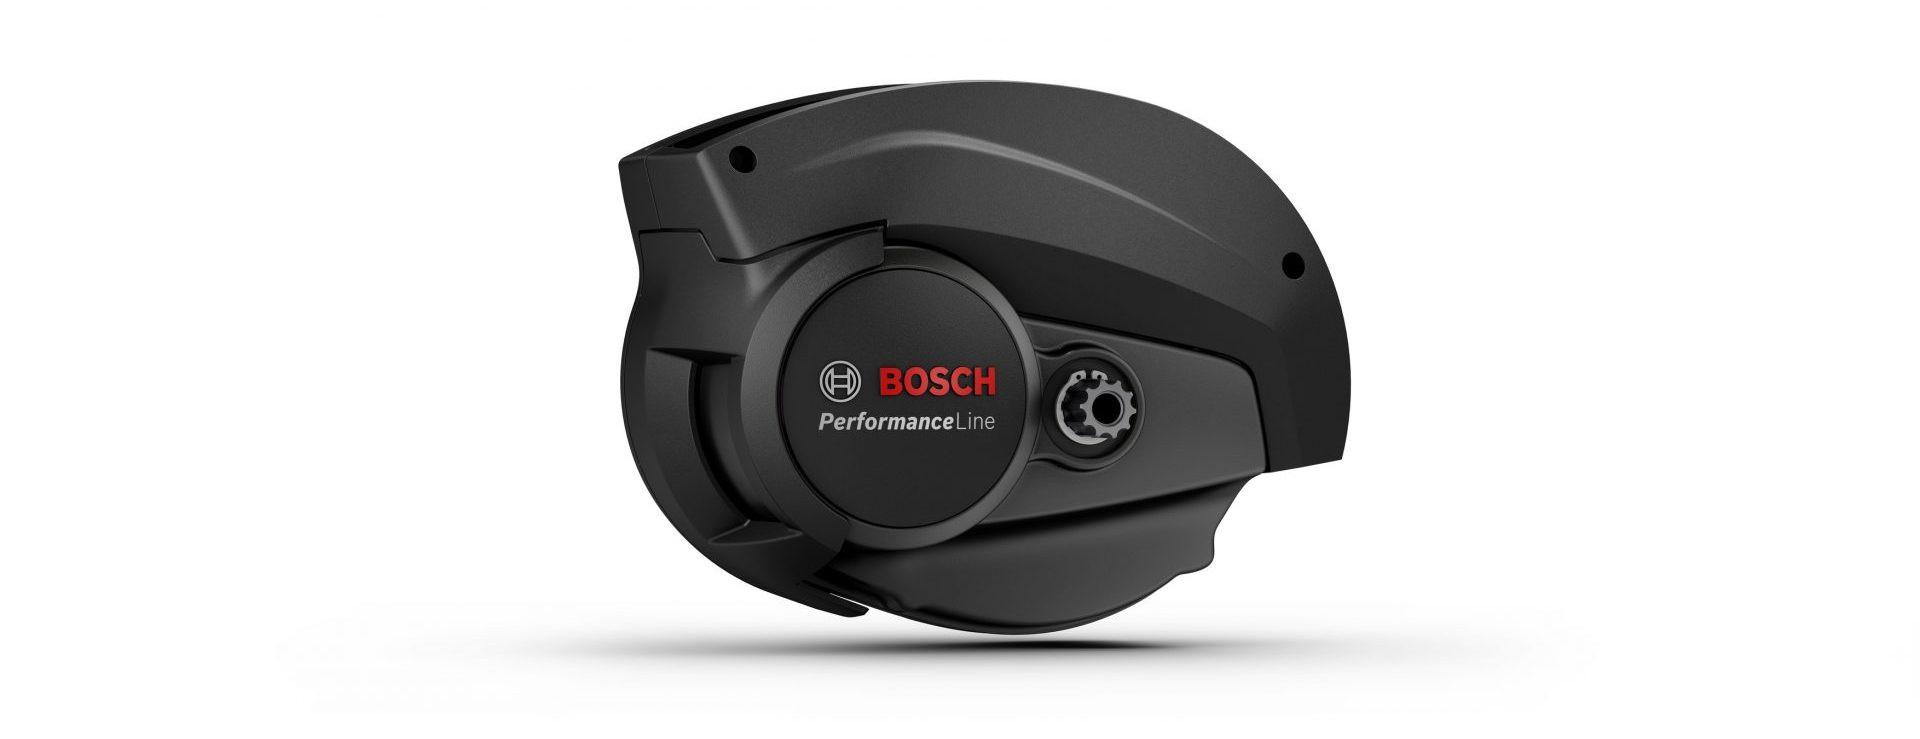 BOSCH Performance Line 2020